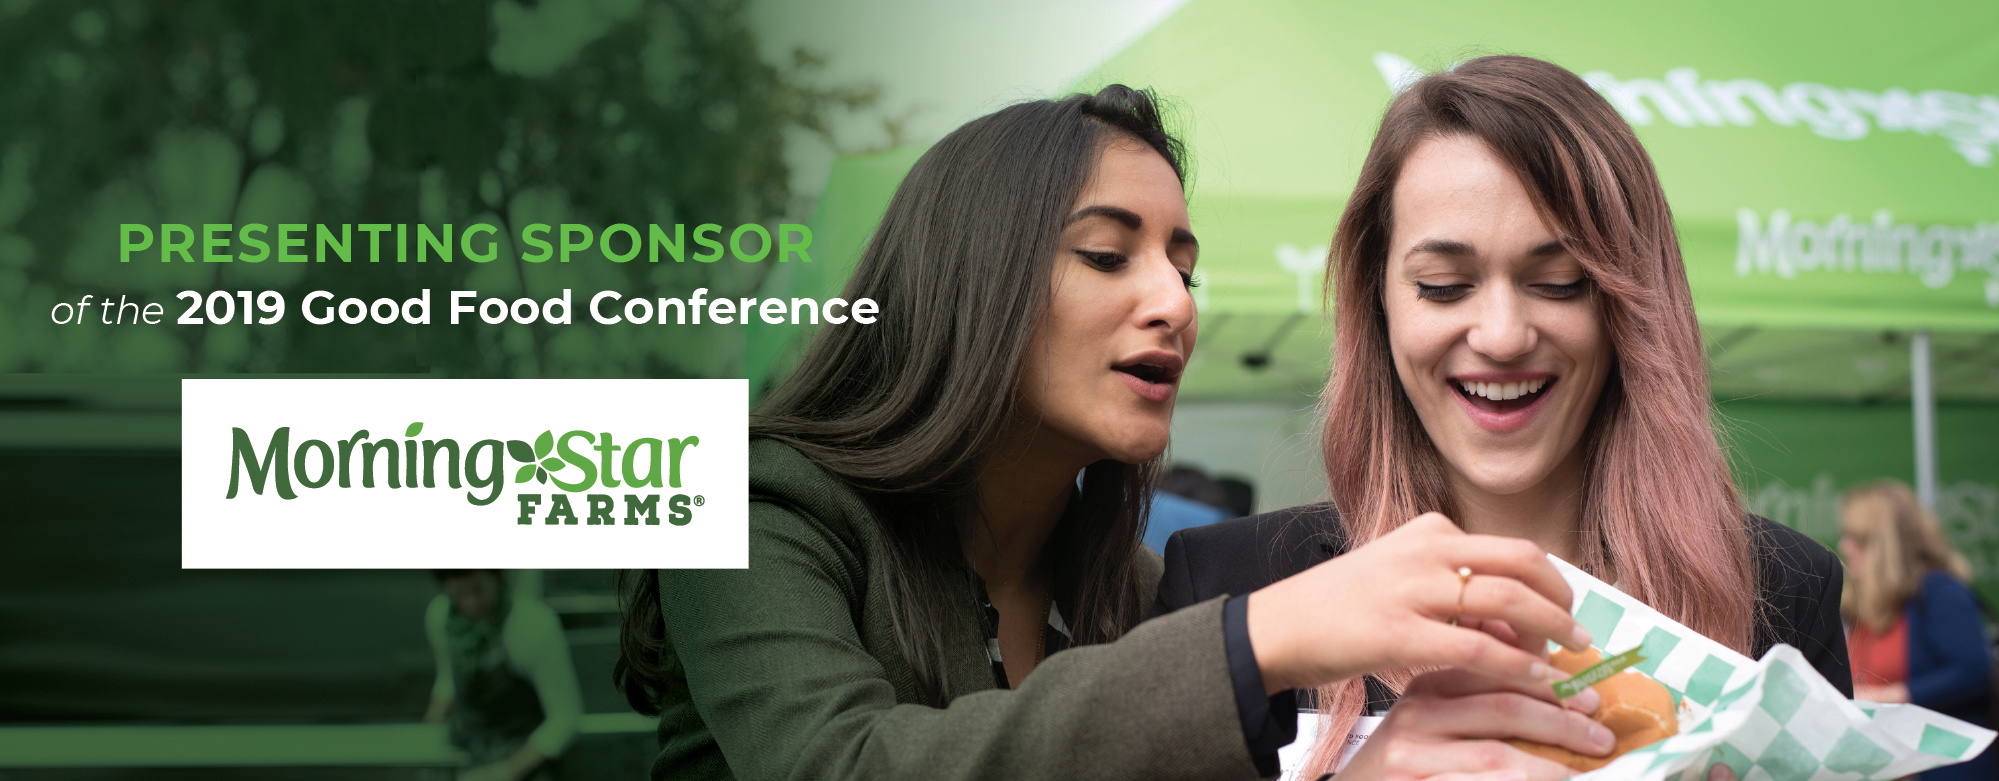 Presenting Sponsor of the 2019 Good Food Conference: Morningstar Farms